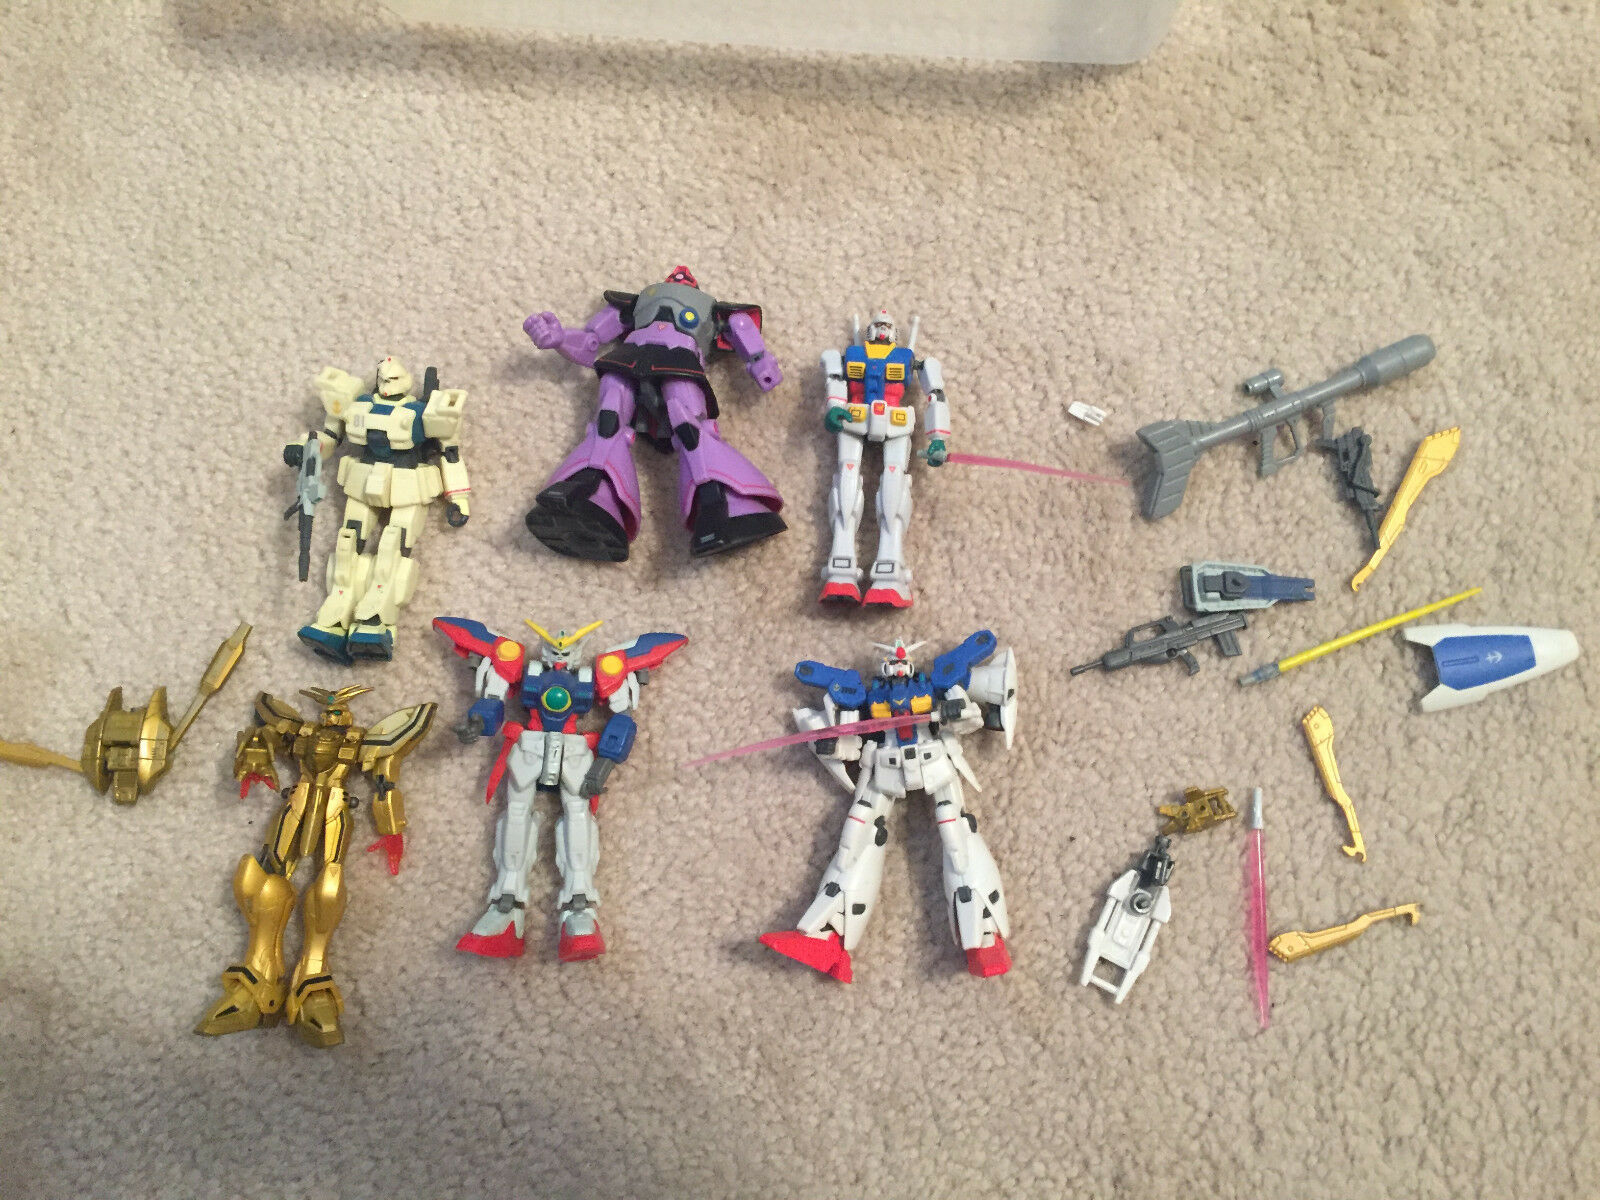 GUNDAM FIGURES ROBOT LOT WITH WEAPONS ANIME ANIME ANIME BANDAI 3.5 INCHES 6fc5ac